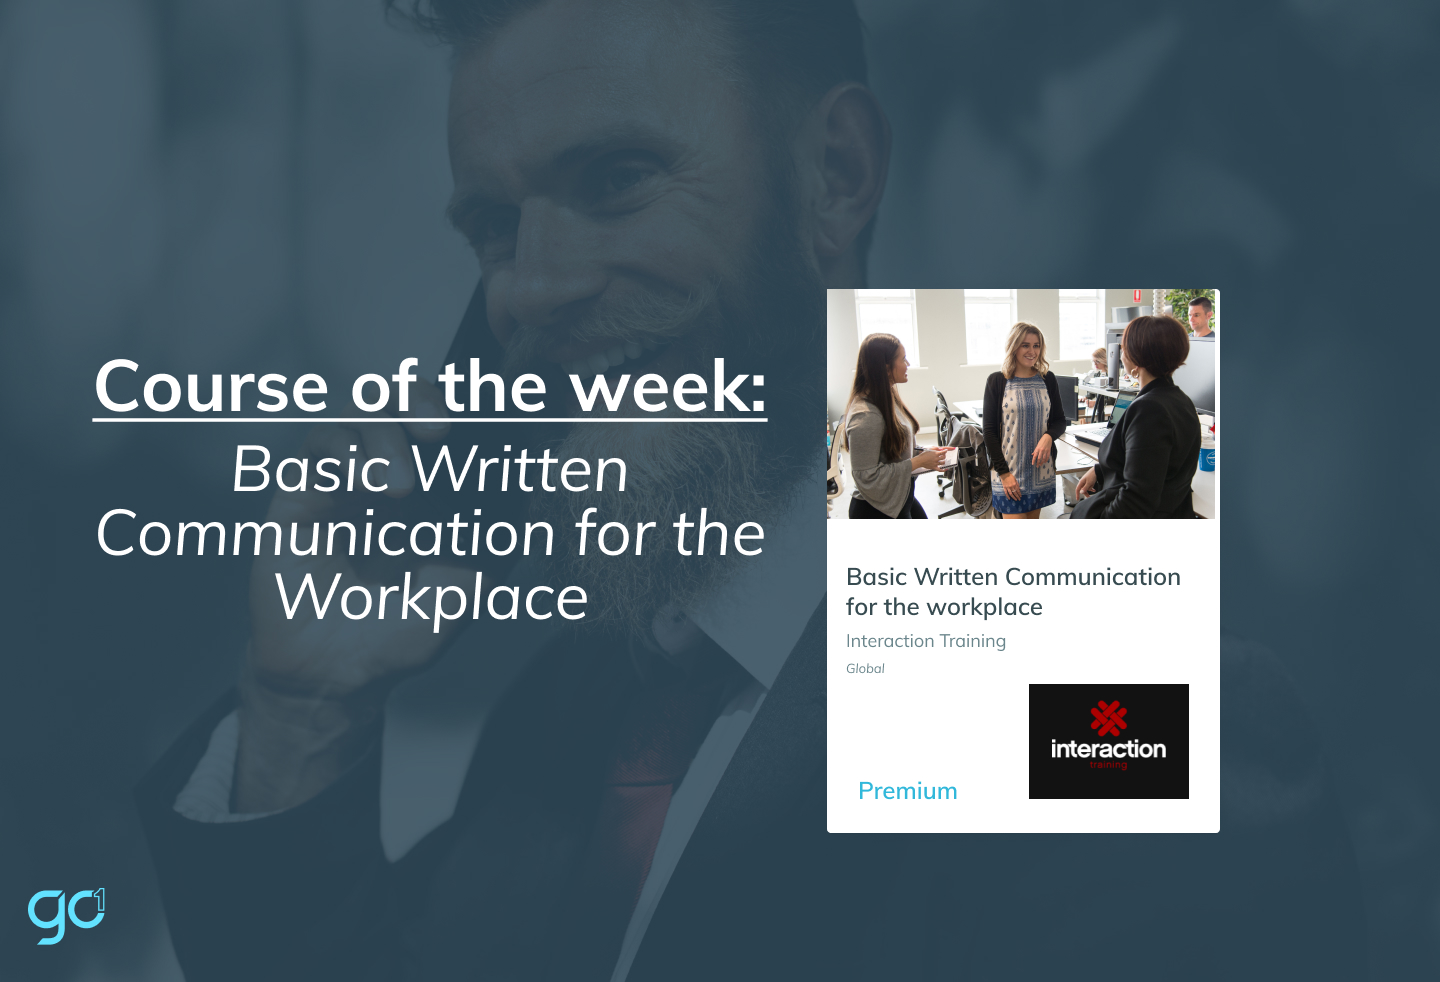 Course of the week: Basic Written Communication for the workplace